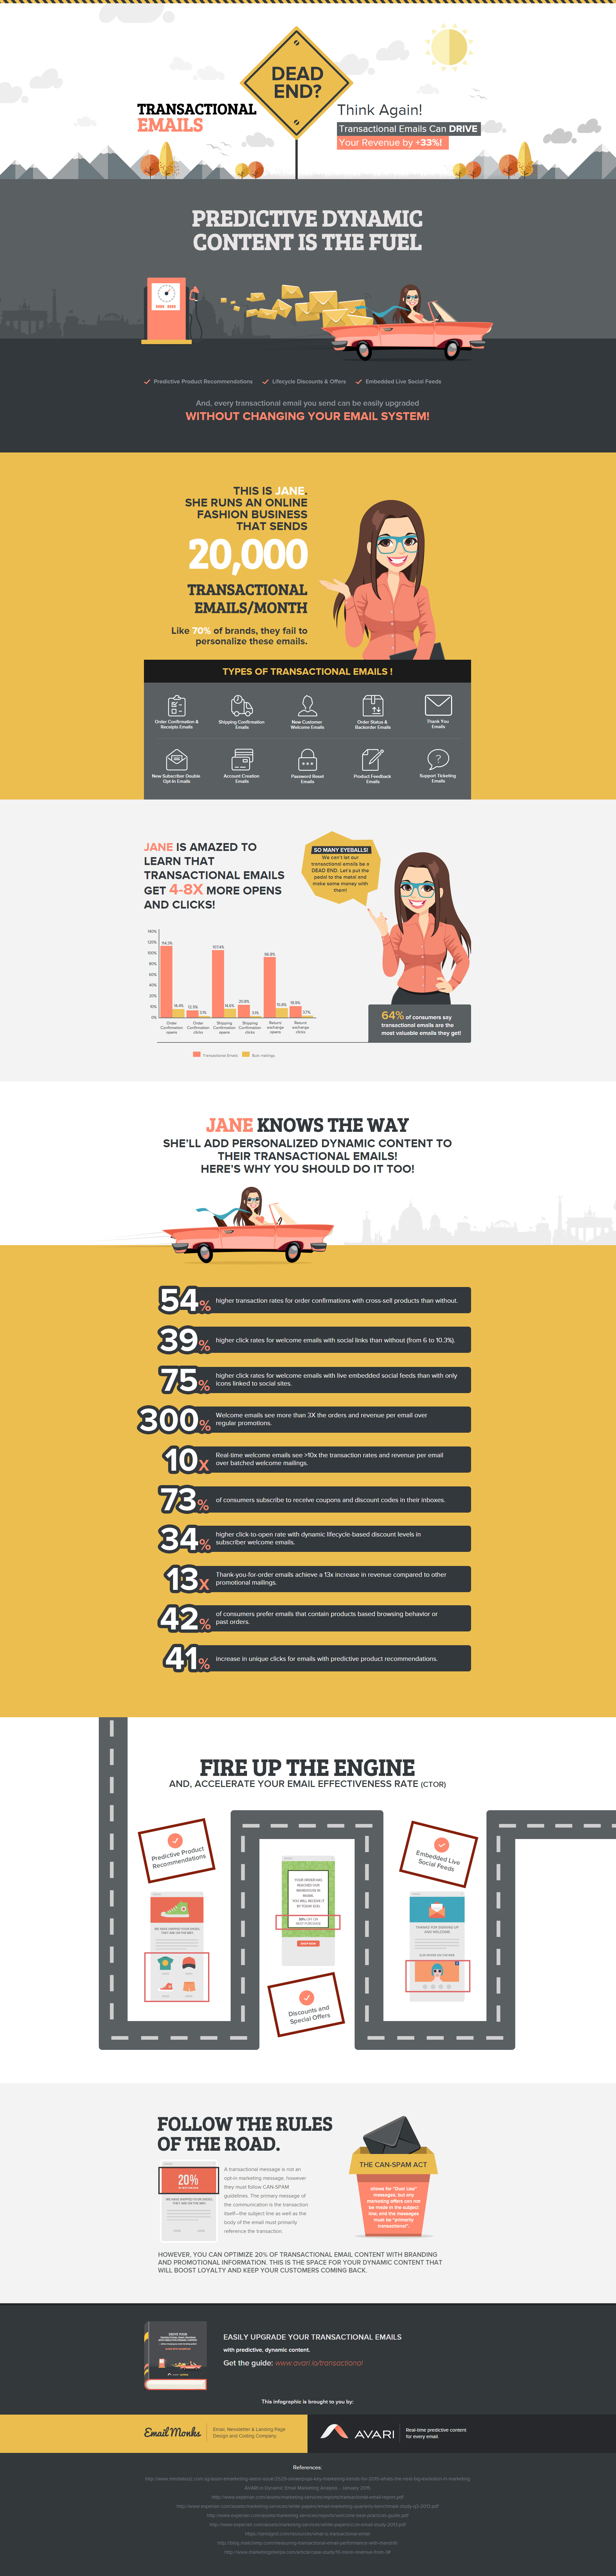 transactional-email-infographic